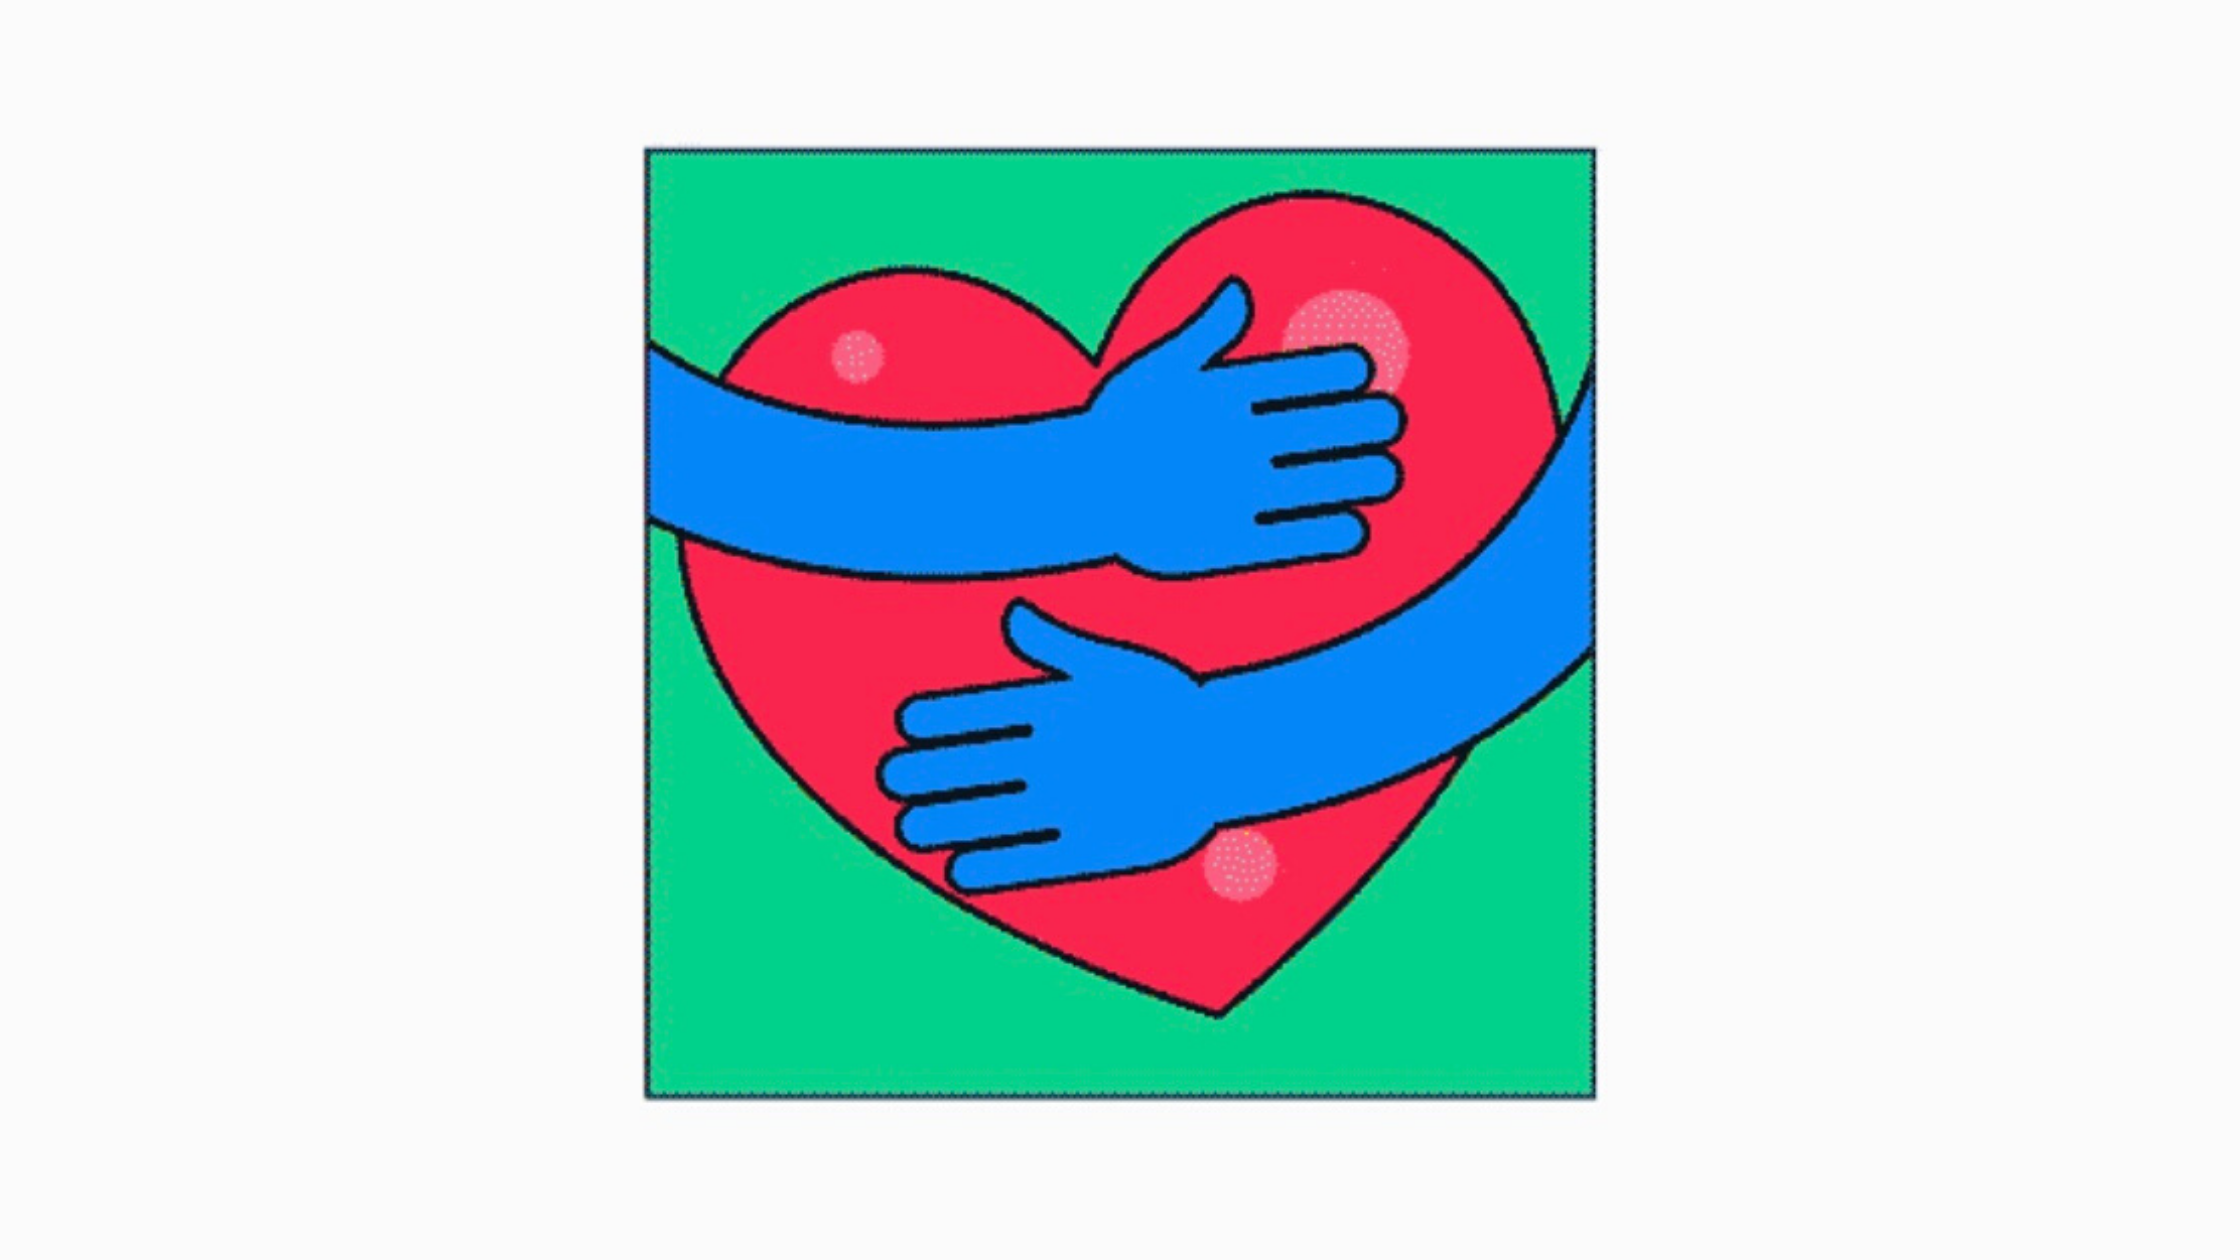 A heart being hugged by two hands